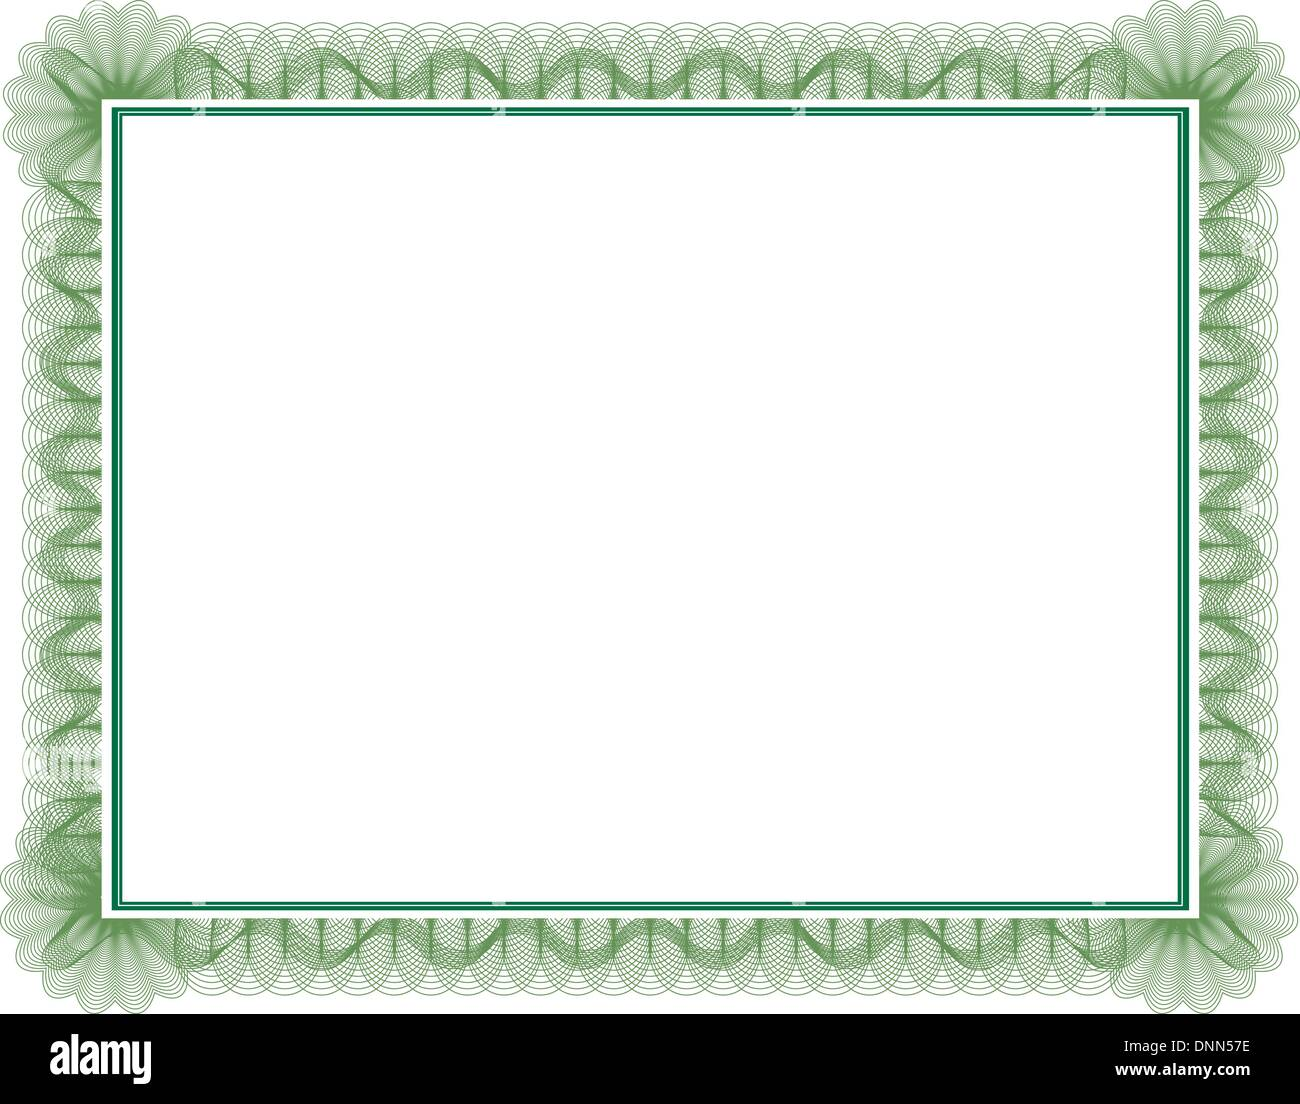 Guilloche Stock Vector Images - Alamy